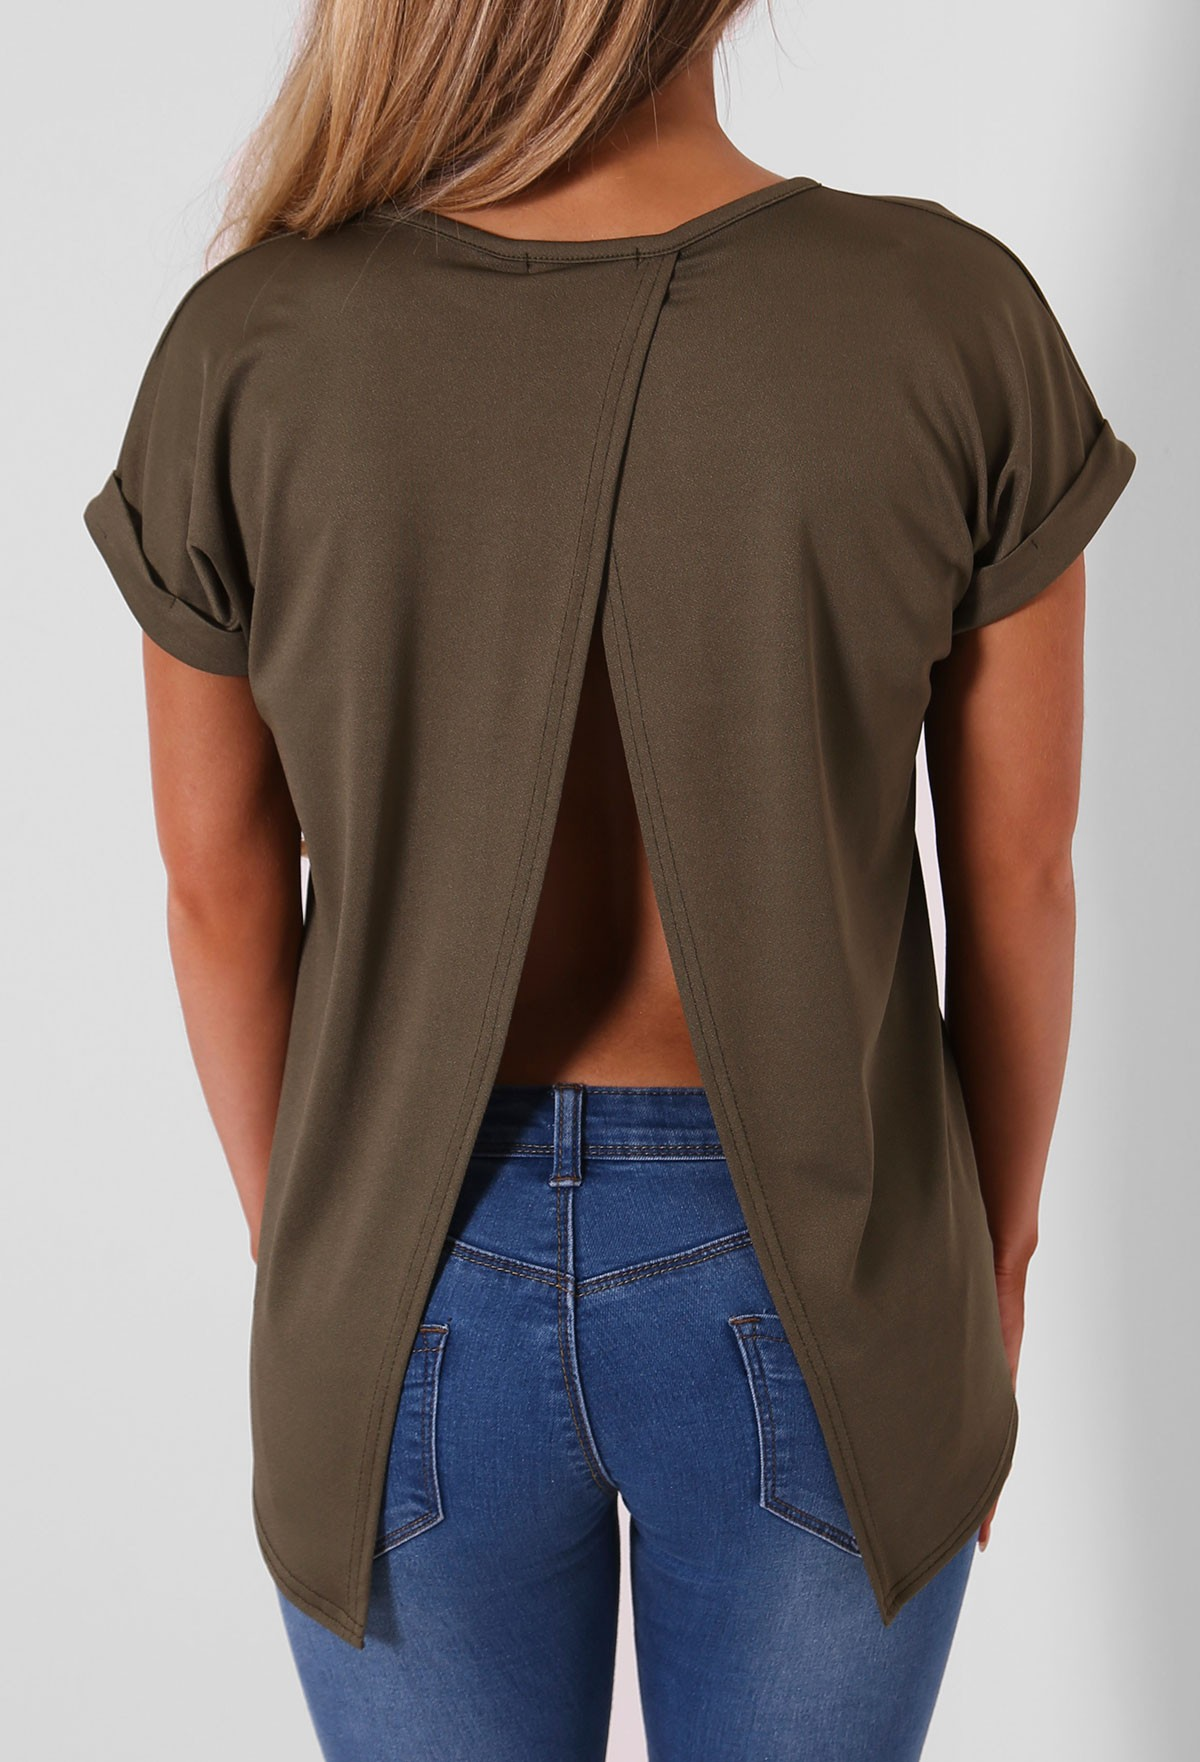 Open Back Tops. Clothing. Women. Open Back Tops. Showing 48 of results that match your query. Search Product Result. Product - Women's Shine Open Back Tank. Clearance. Product - KOGMO Womens Solid Short Sleeve Tunic Top with Open Back .